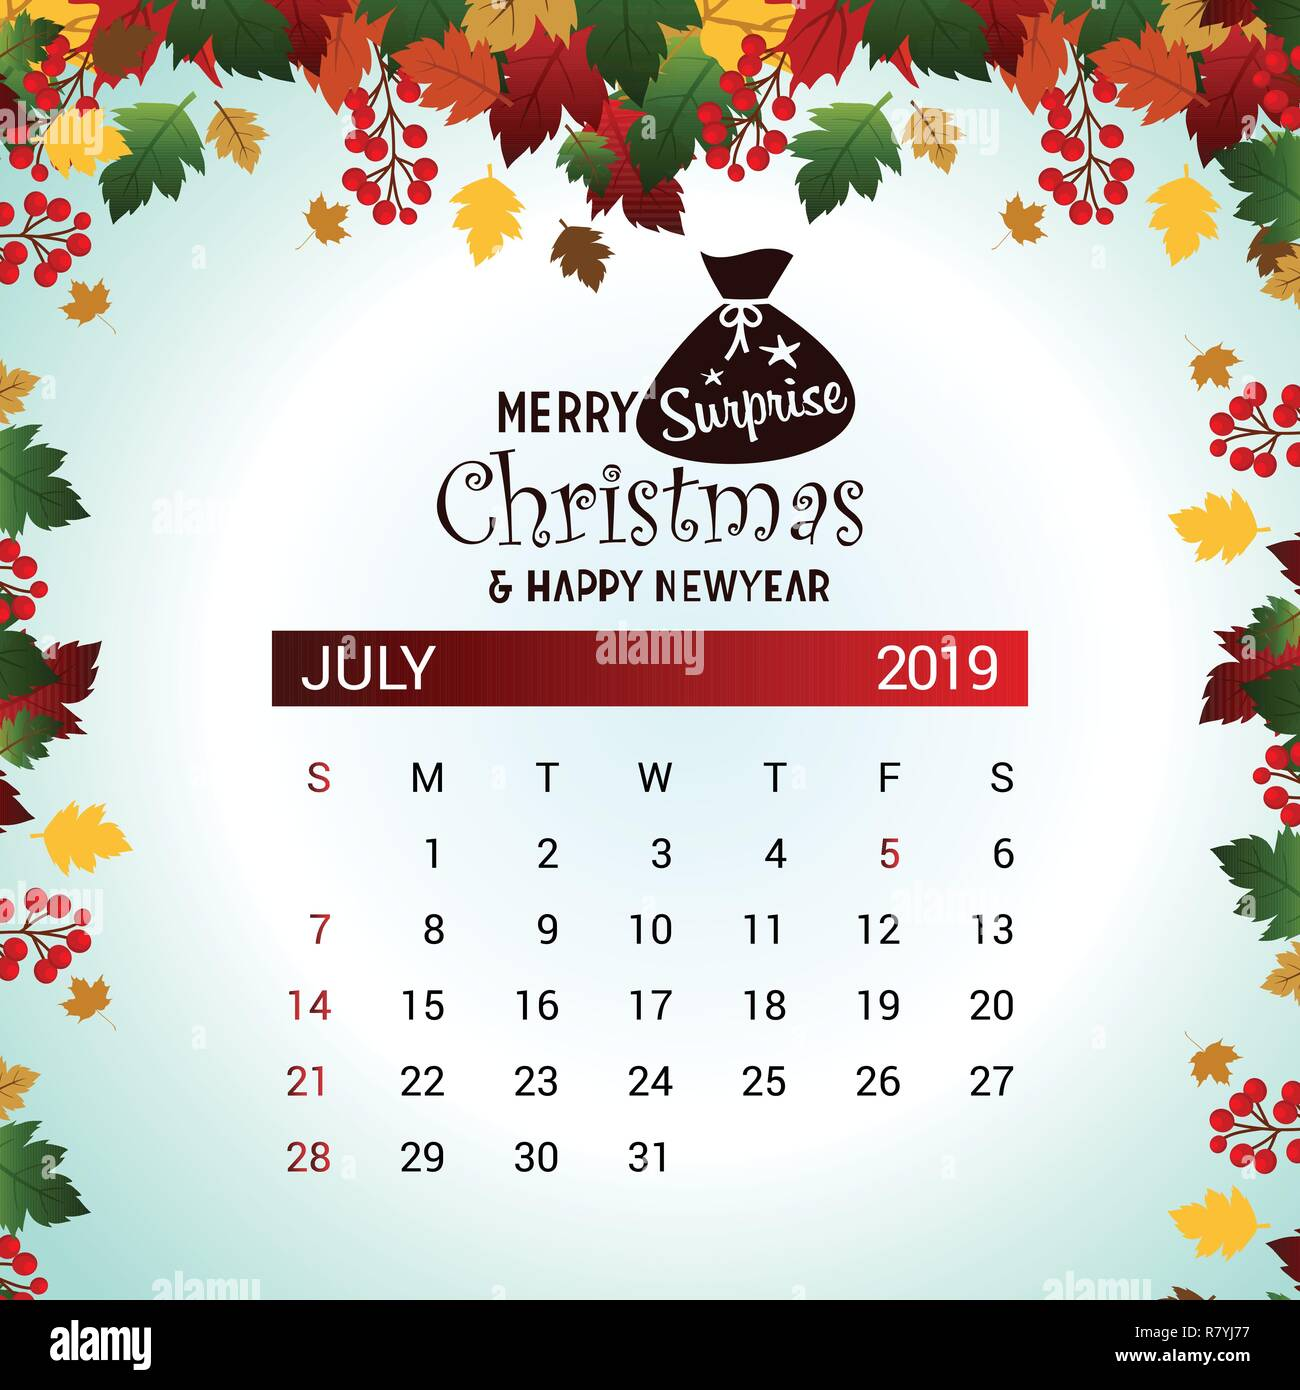 Christmas In July 2019 Images.2019 July Calendar Design Template Of Christmas Or New Year